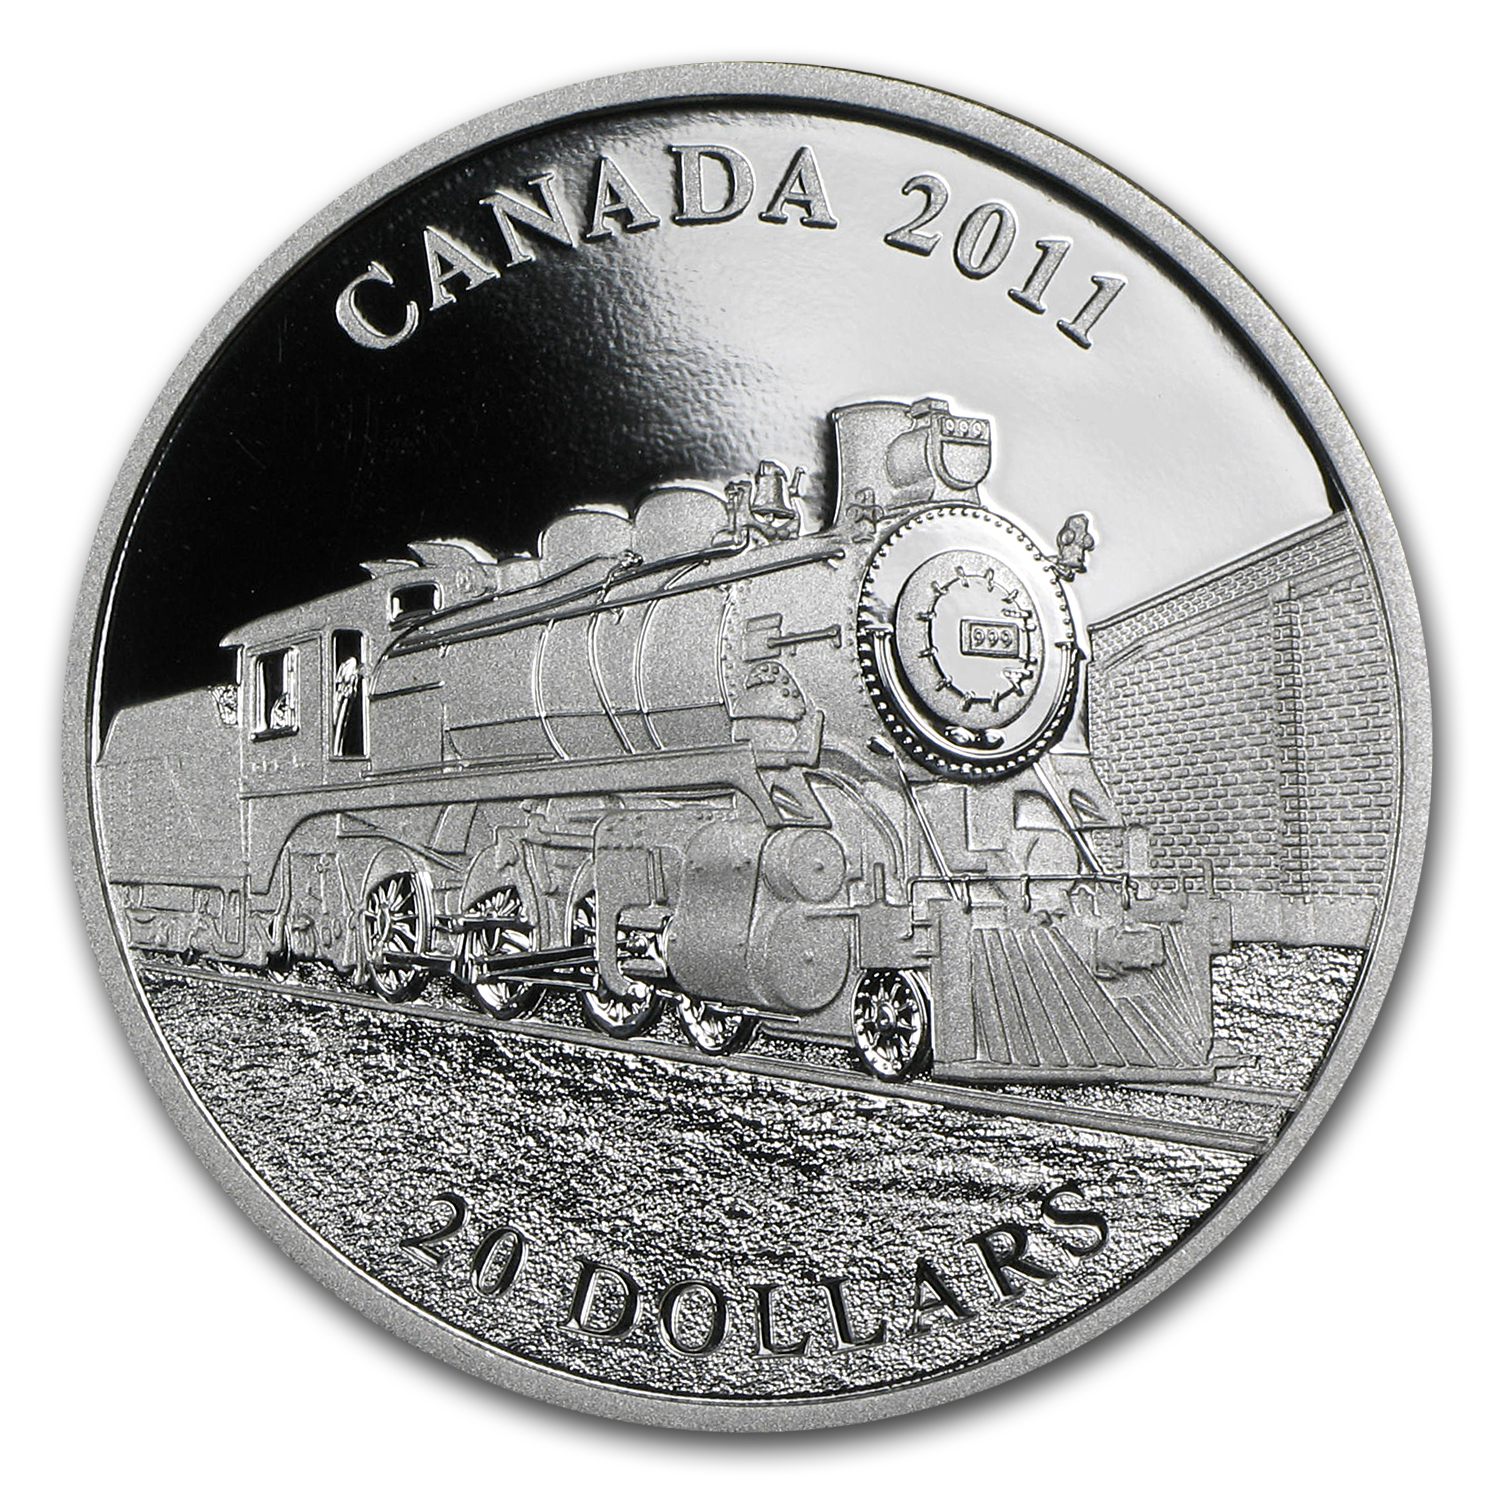 2011 Canada 1 oz Silver $20 Great Locomotives D-10 (w/Box)